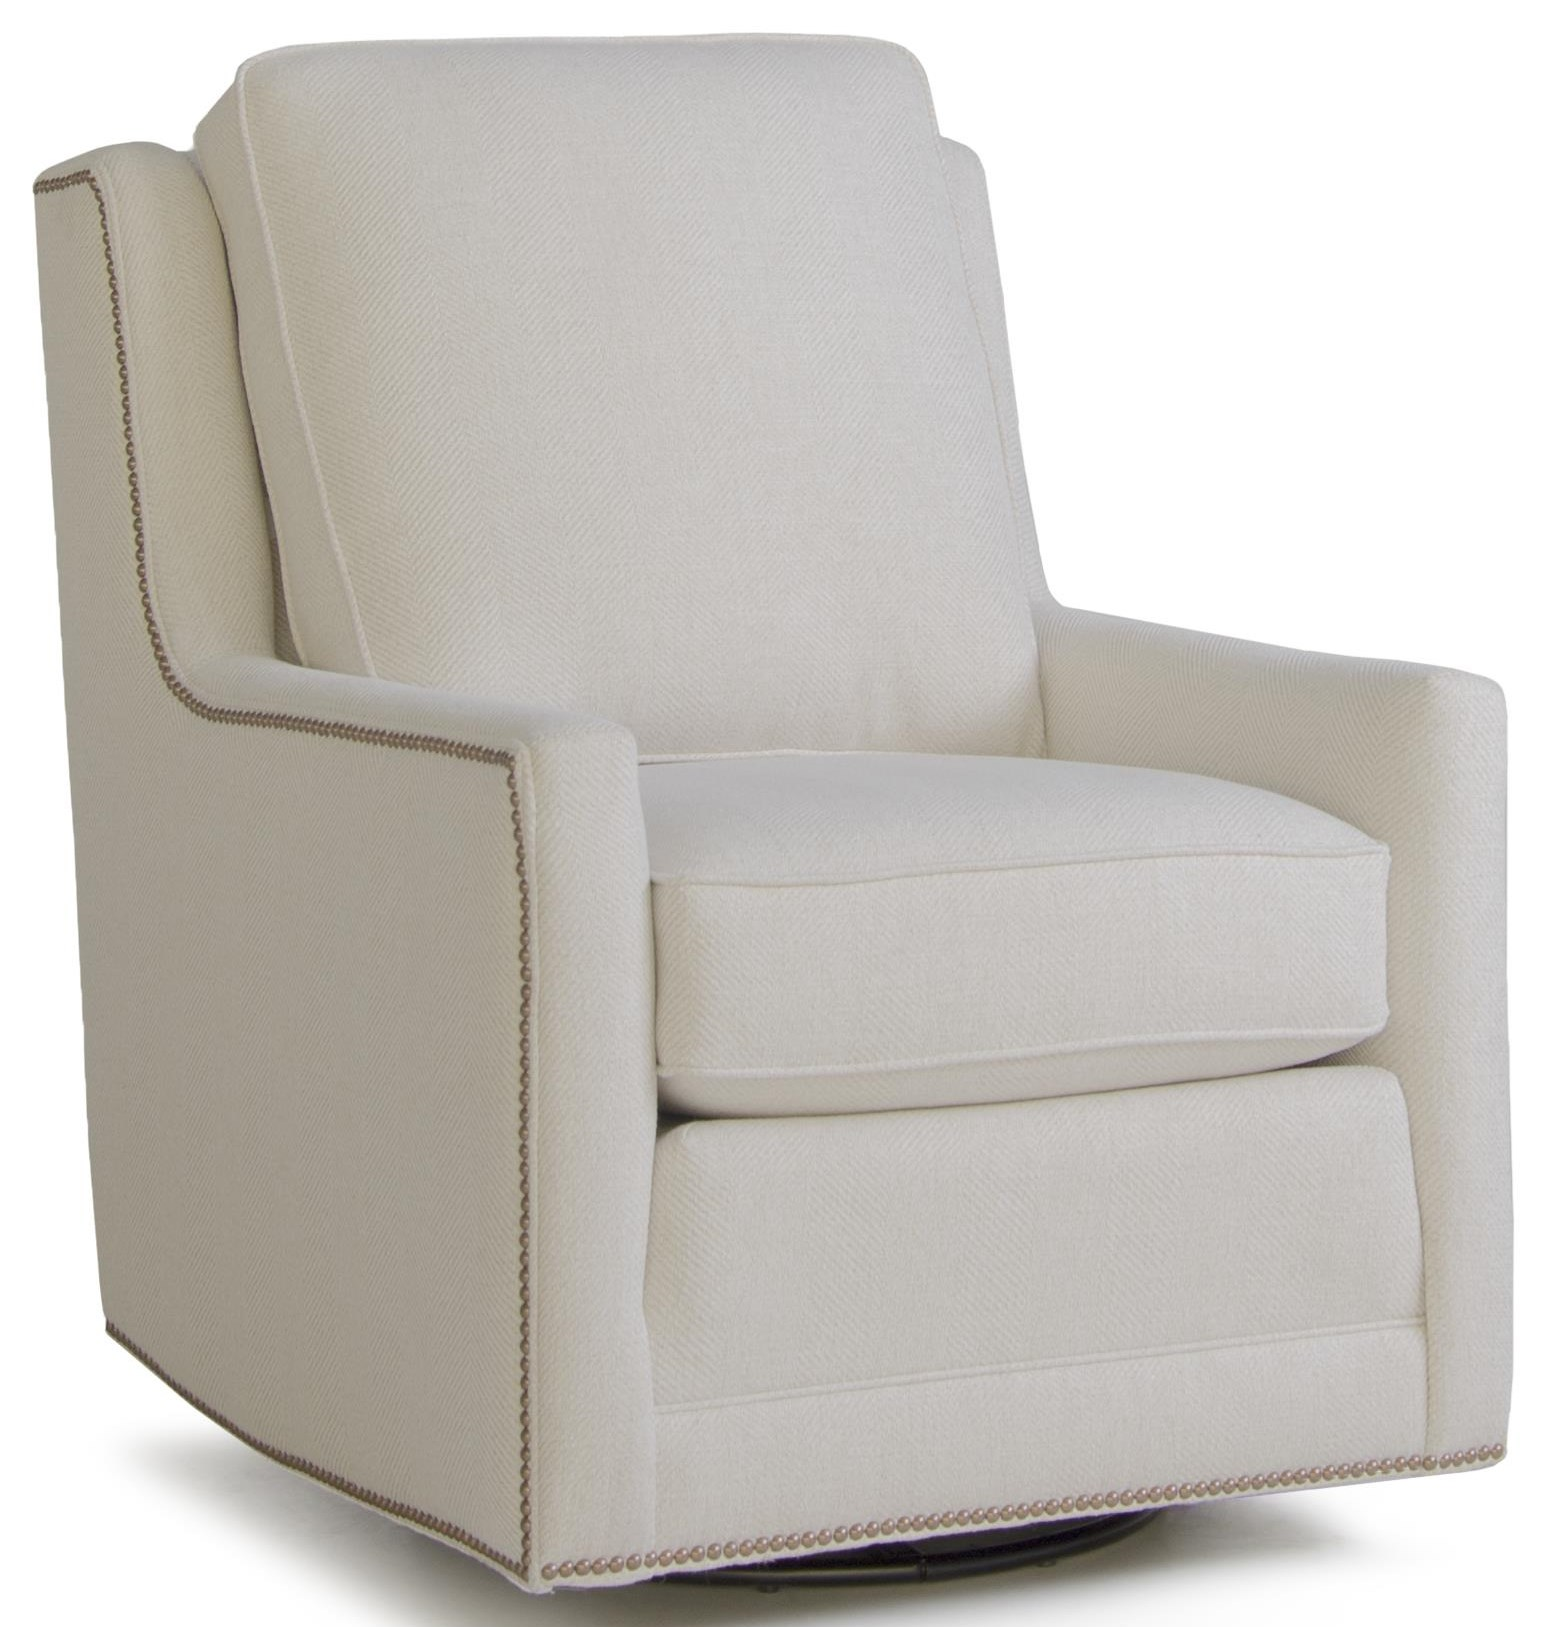 Atwell Swivel Chair by Smith Brothers at Crowley Furniture & Mattress